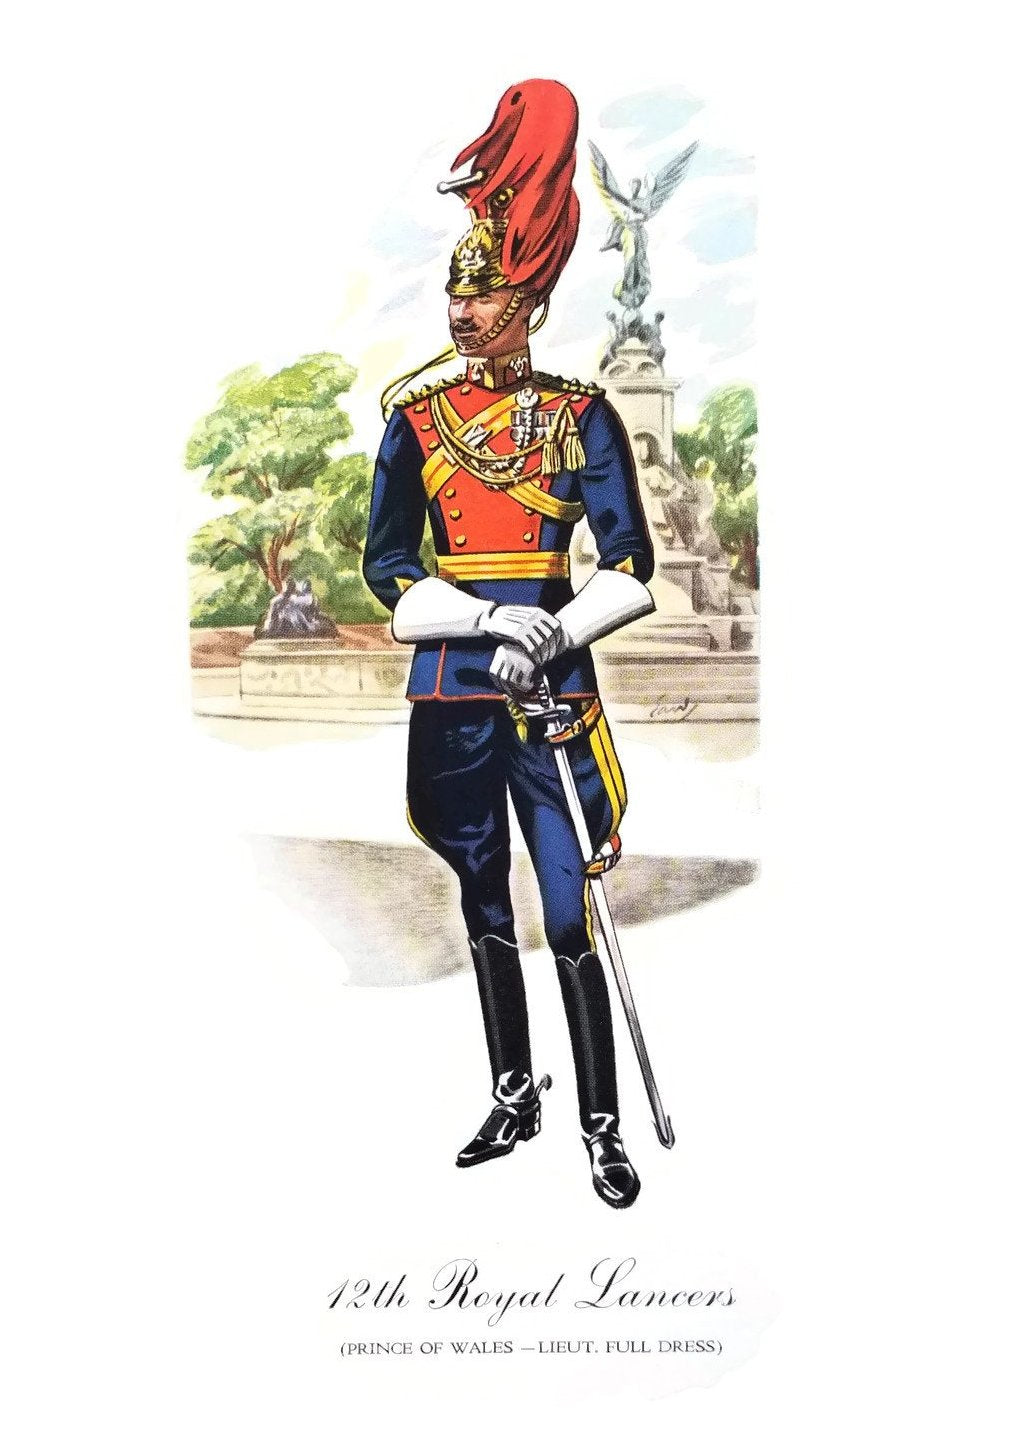 Vintage Military Print-12th Royal Lancers - SARAJANEaccessories